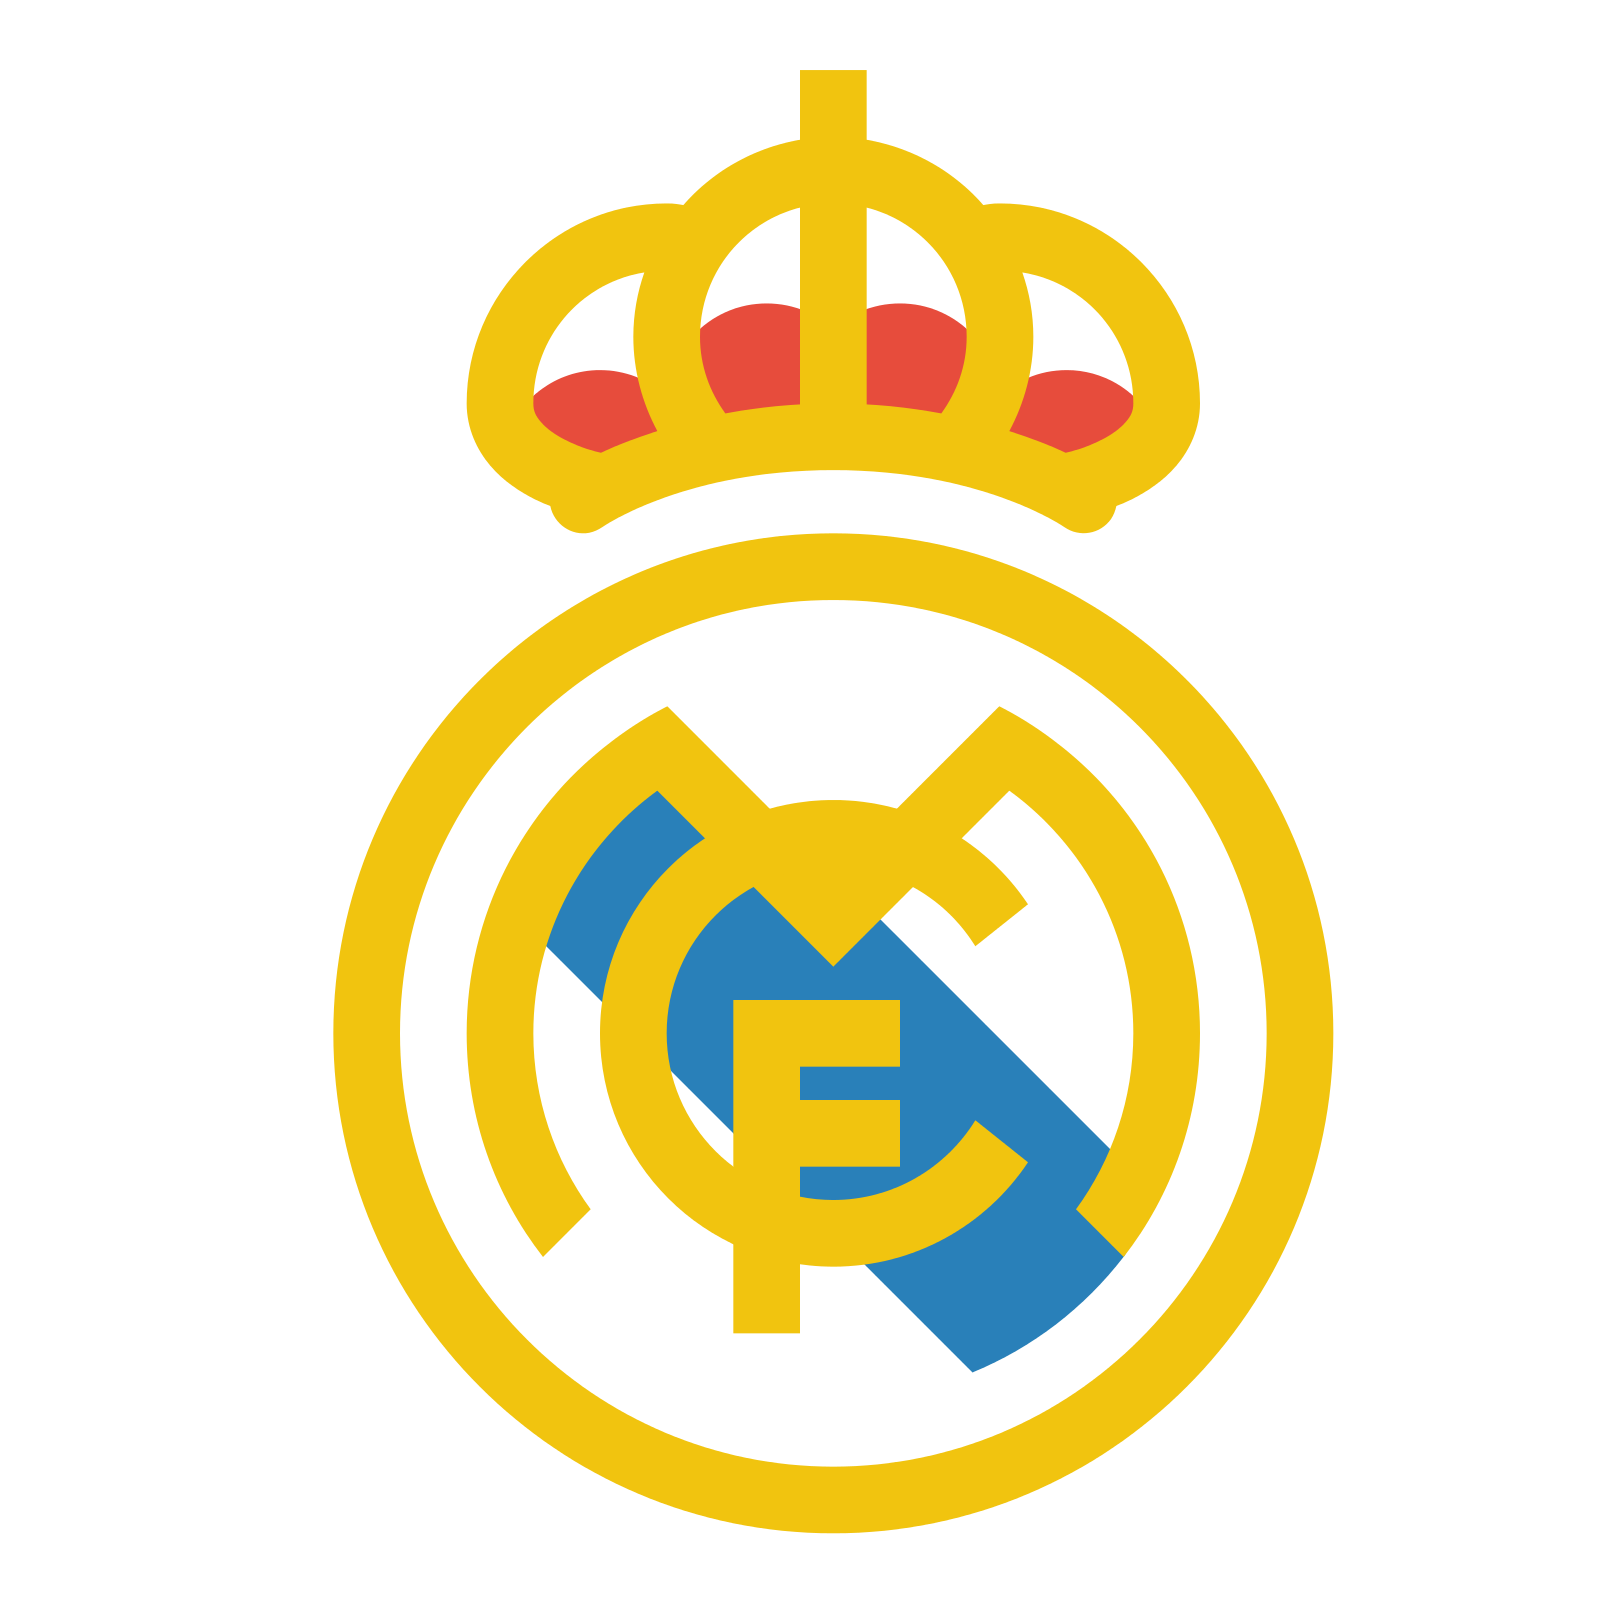 512x512 logo real madrid logo png impremedia #27140